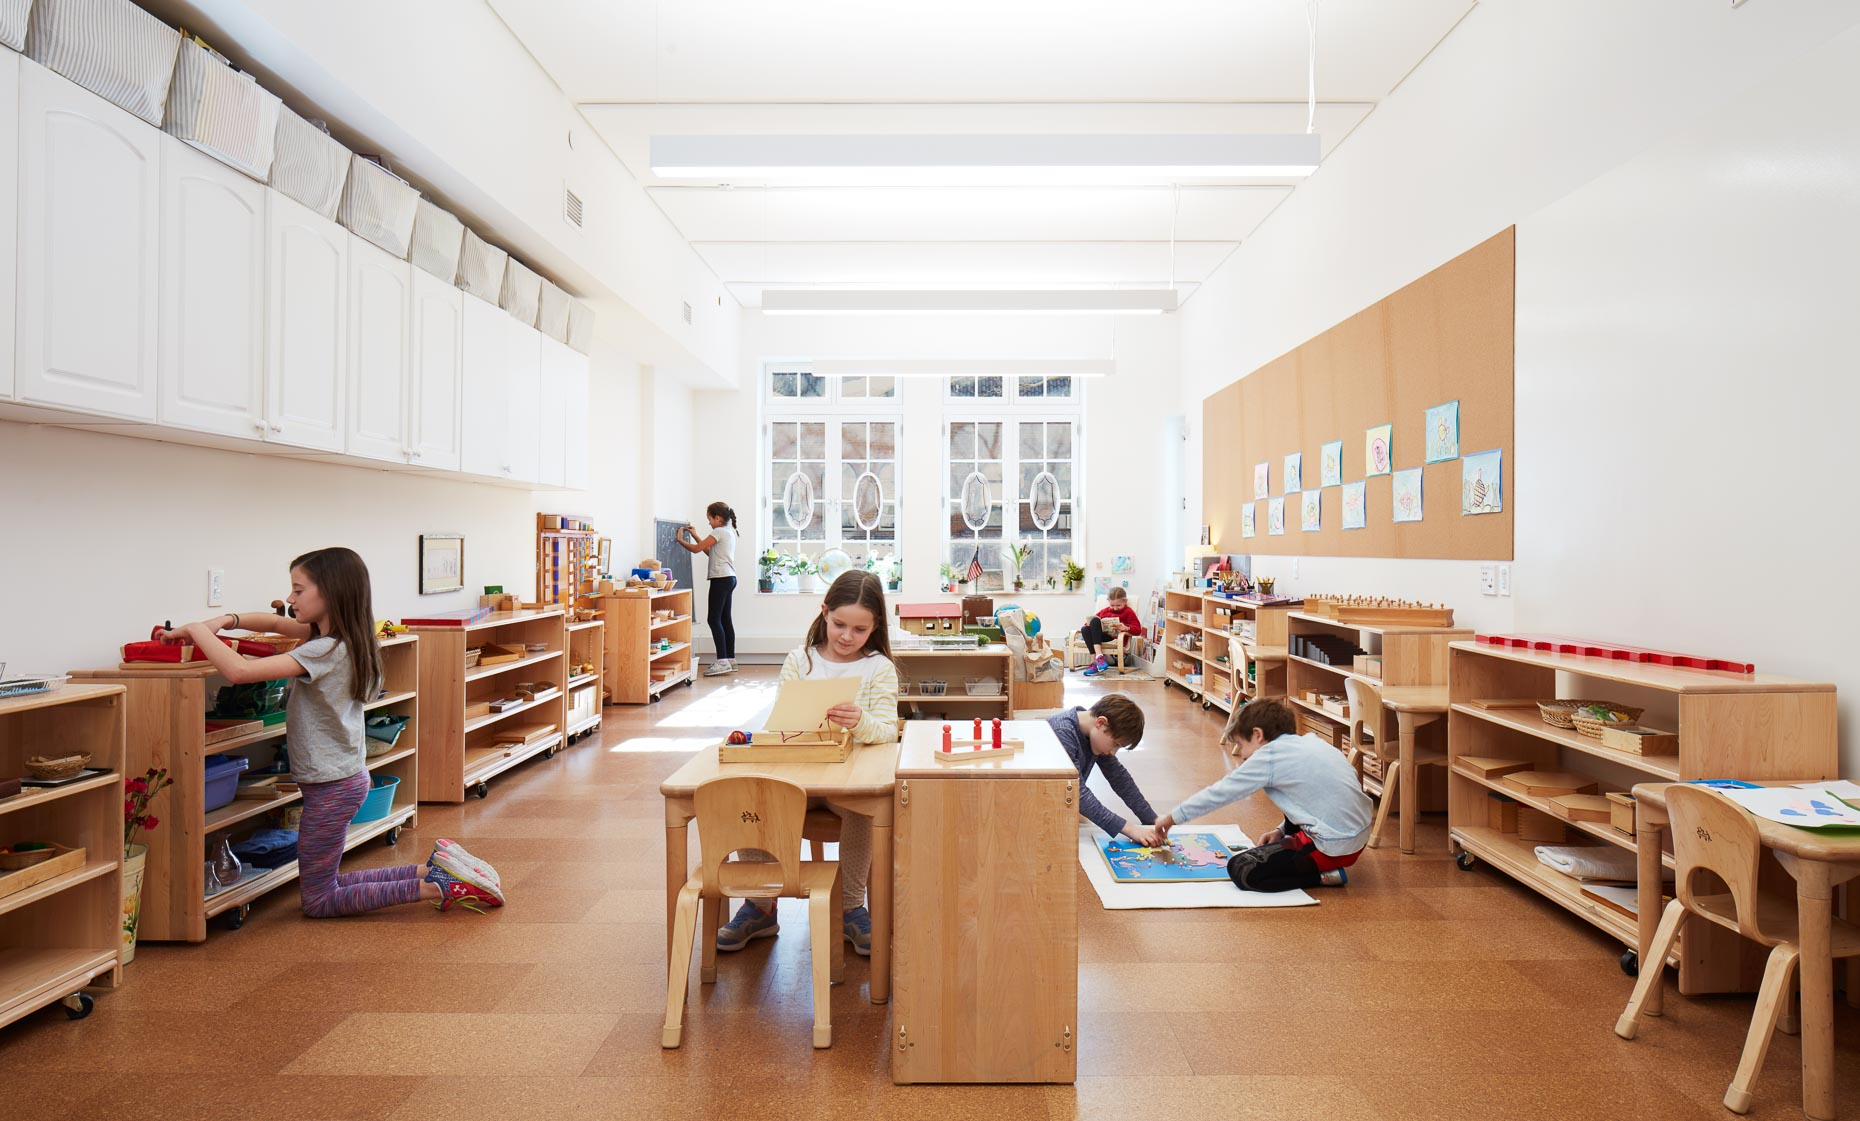 Students inside a classroom with bright interiors